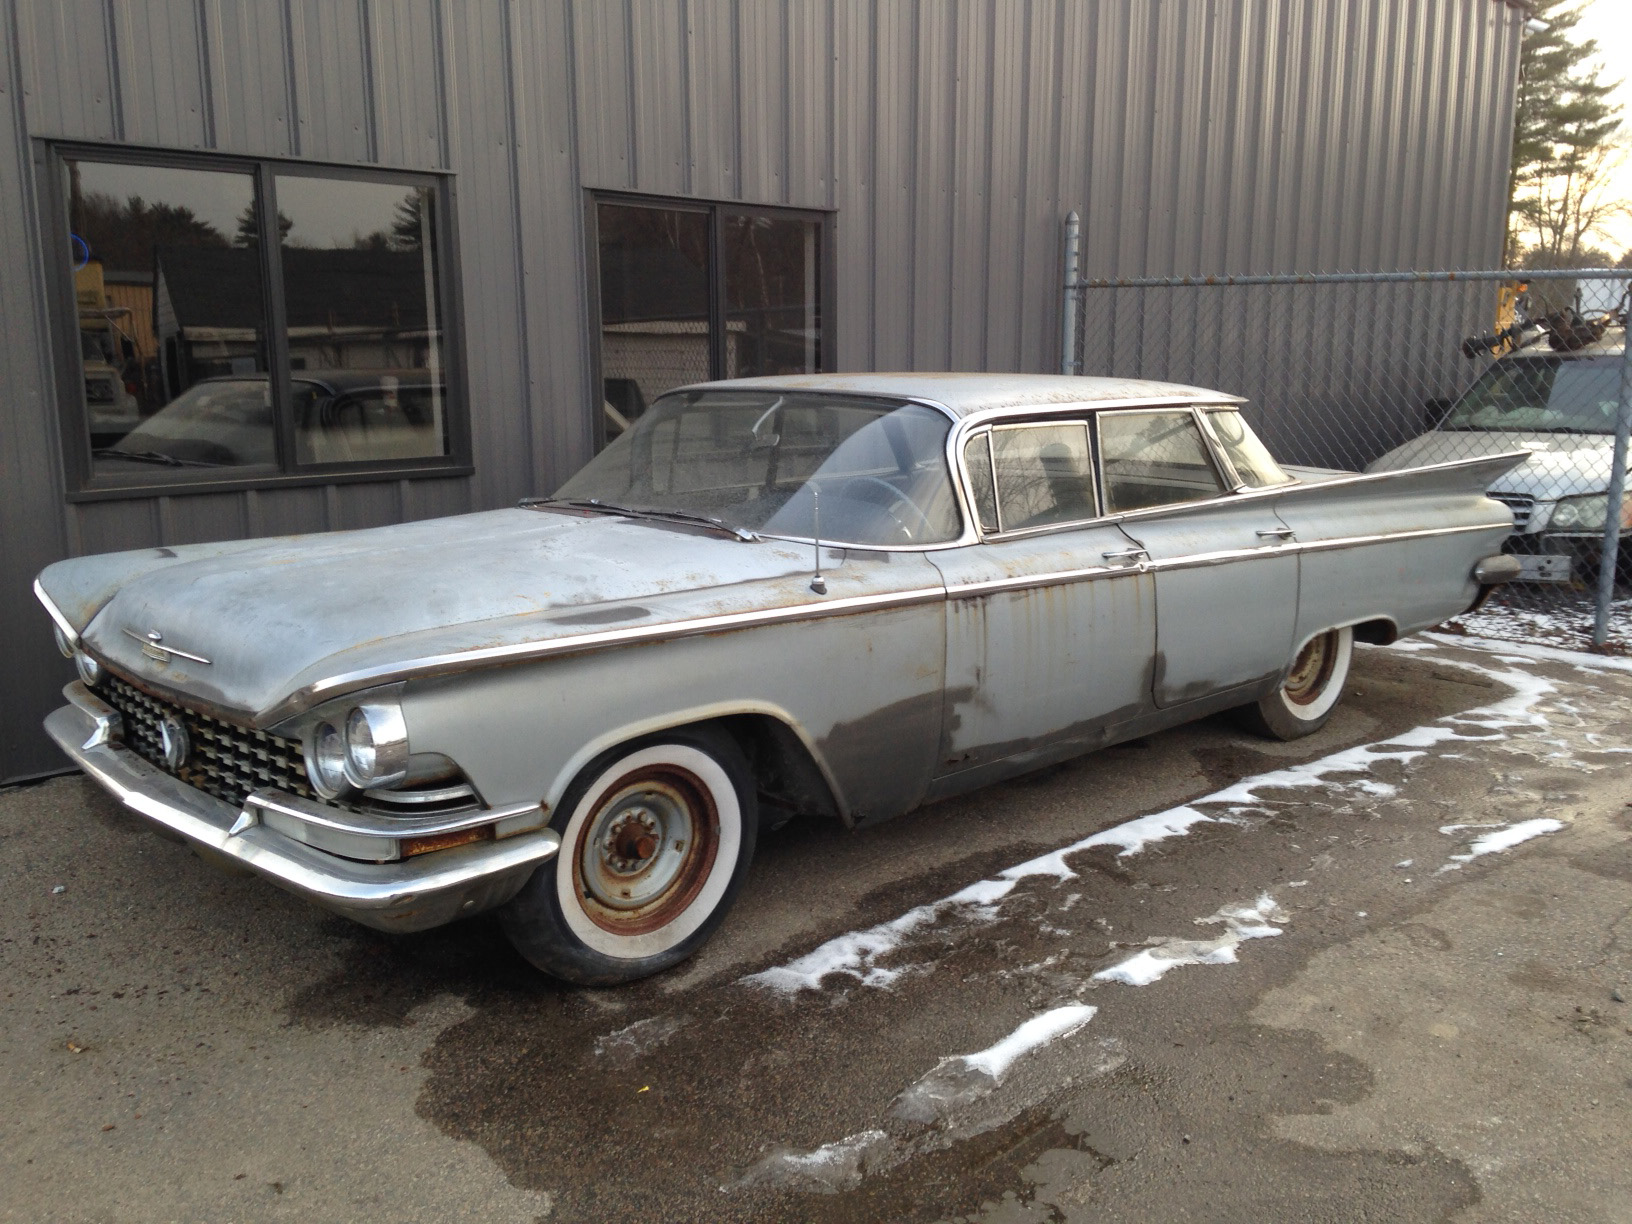 1959 Buick Invicta 2 additionally Saw Awesome 1959 Buick Invicta Front Junkyard Want Know Build together with 1960 Buick Electra 225 Sport Sedan Photo likewise 2916695602 additionally 3c9fdec77bc4d3d7240b6816b3818ac4 29156. on 1959 buick electra